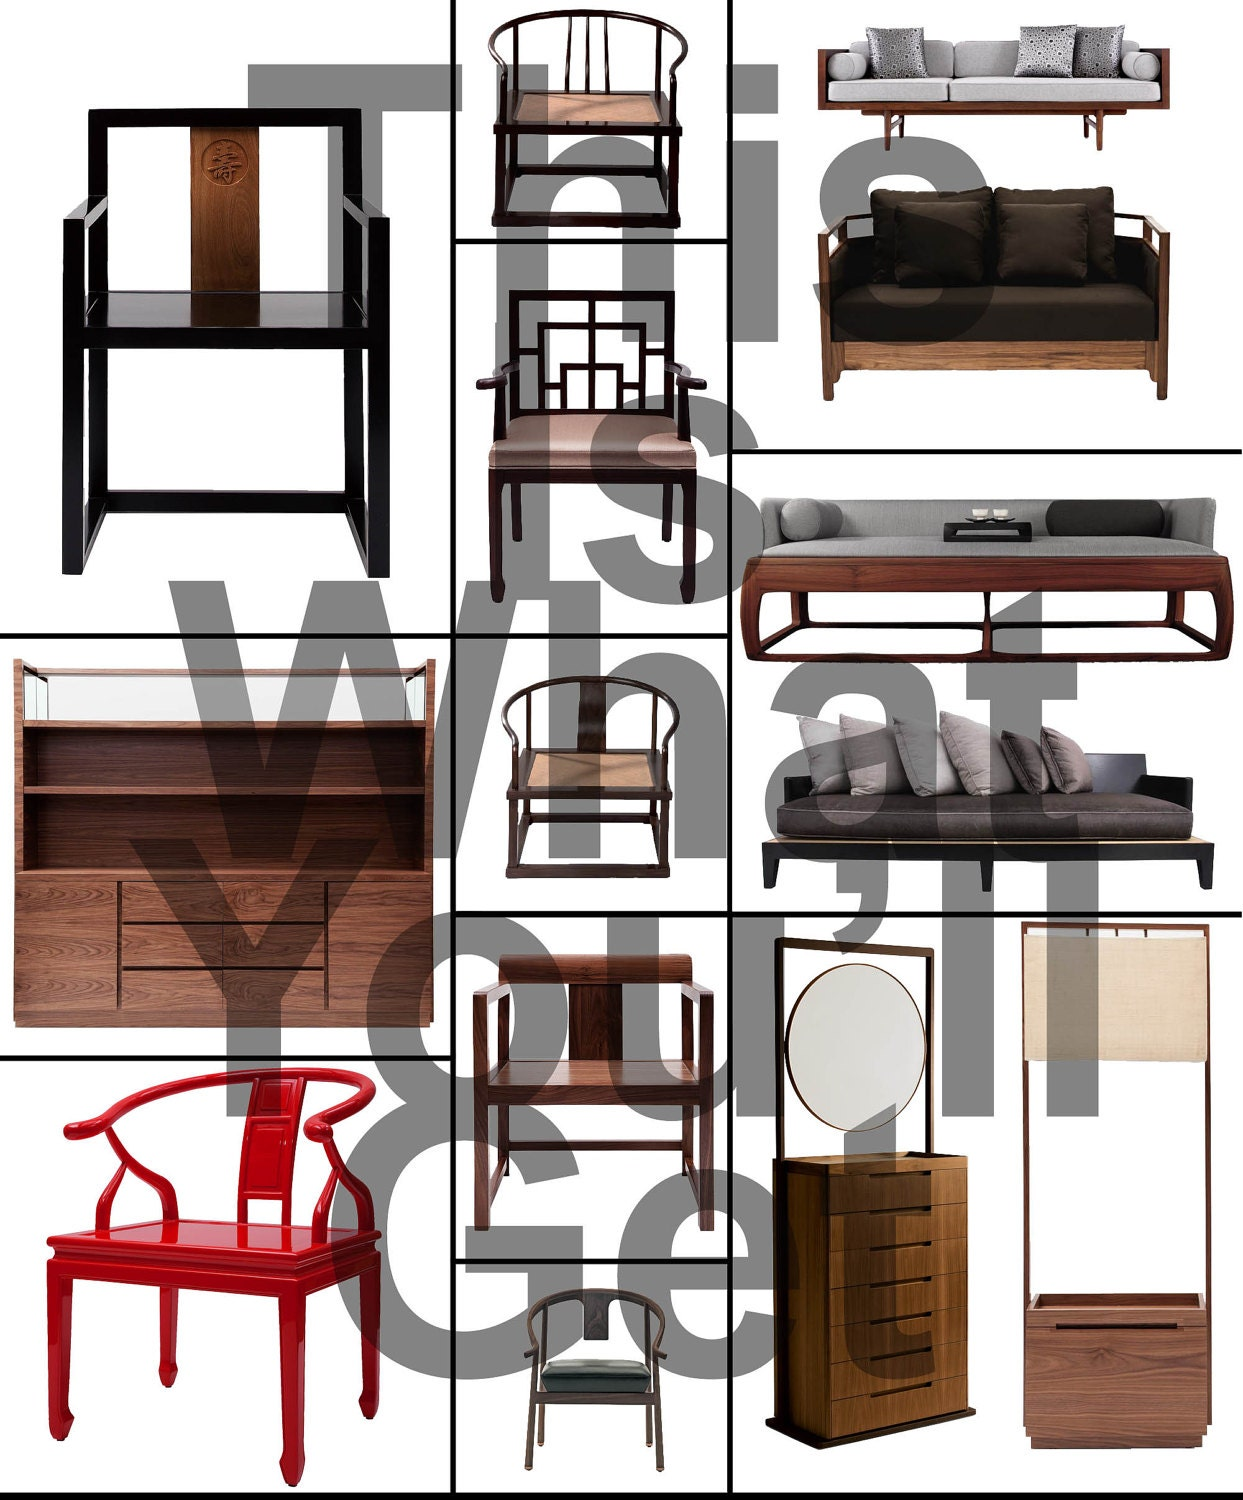 Zen Style Interior Design: Zen Style Furniture Clip Art Photo For Your Mood Board